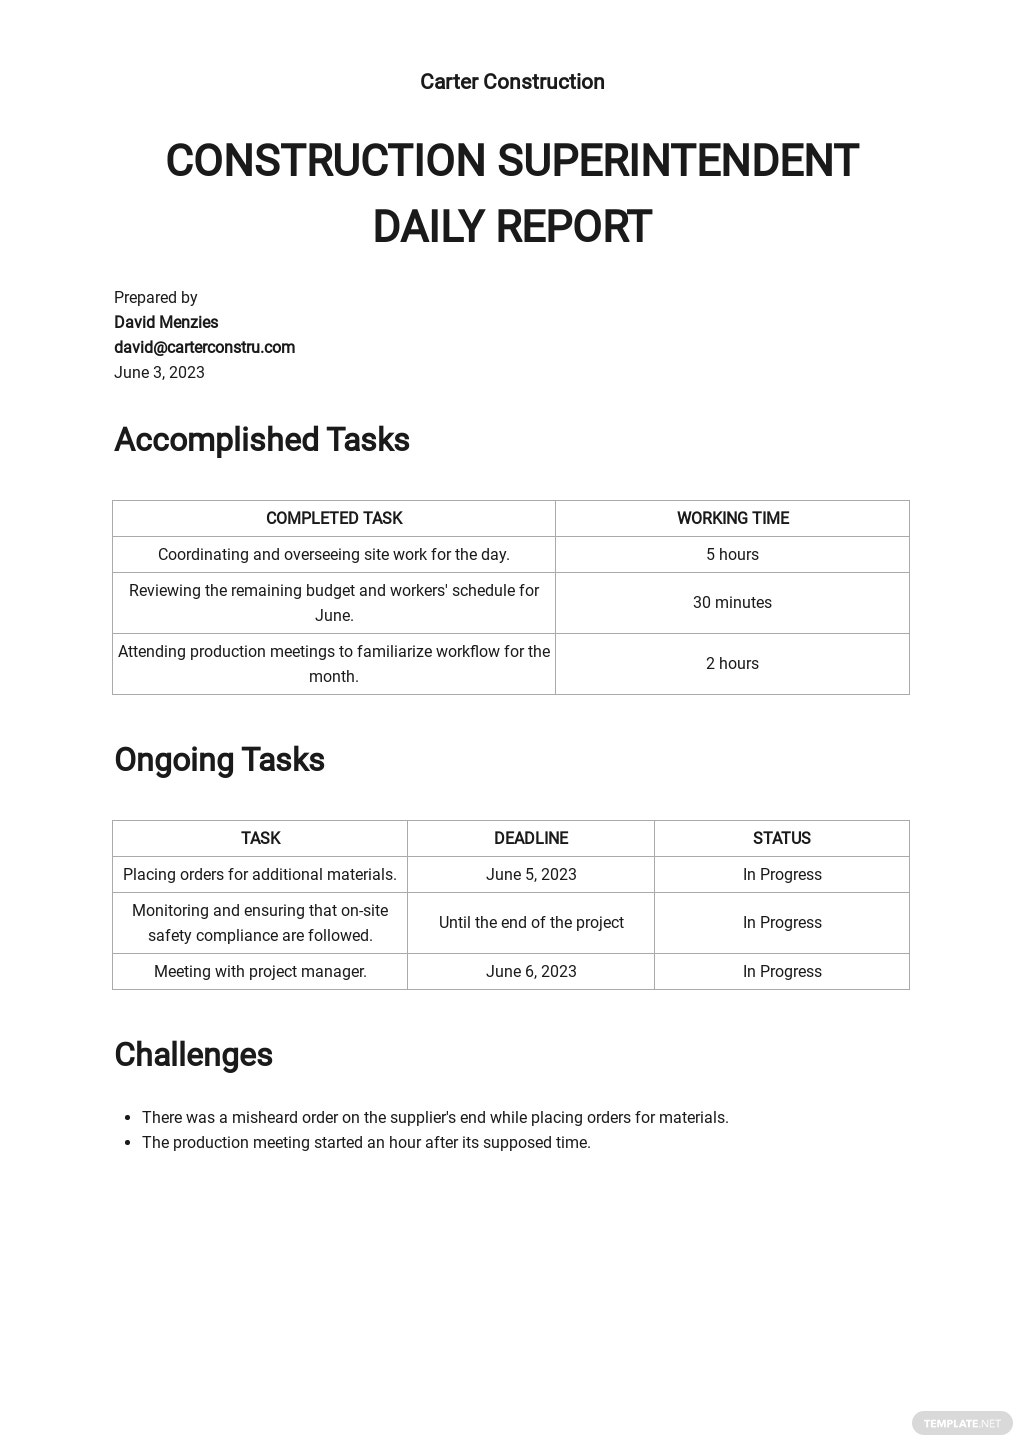 Construction Superintendent Daily Report Template [Free PDF] - Google Docs, Word